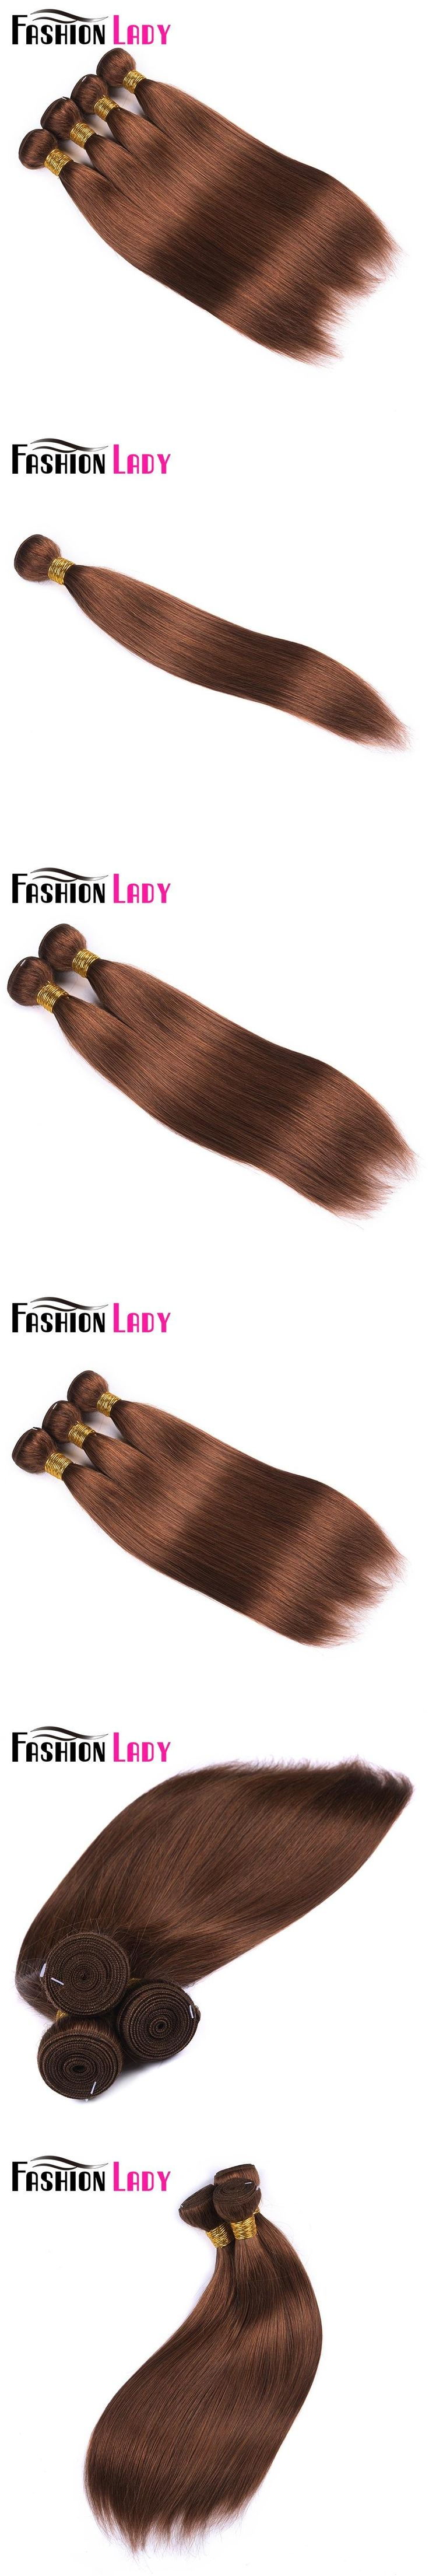 FASHION LADY Pre-Colored One Piece Indian Straight Hair 100% Human Hair Weave #30 Brown Human Hair Bundles Non-Remy